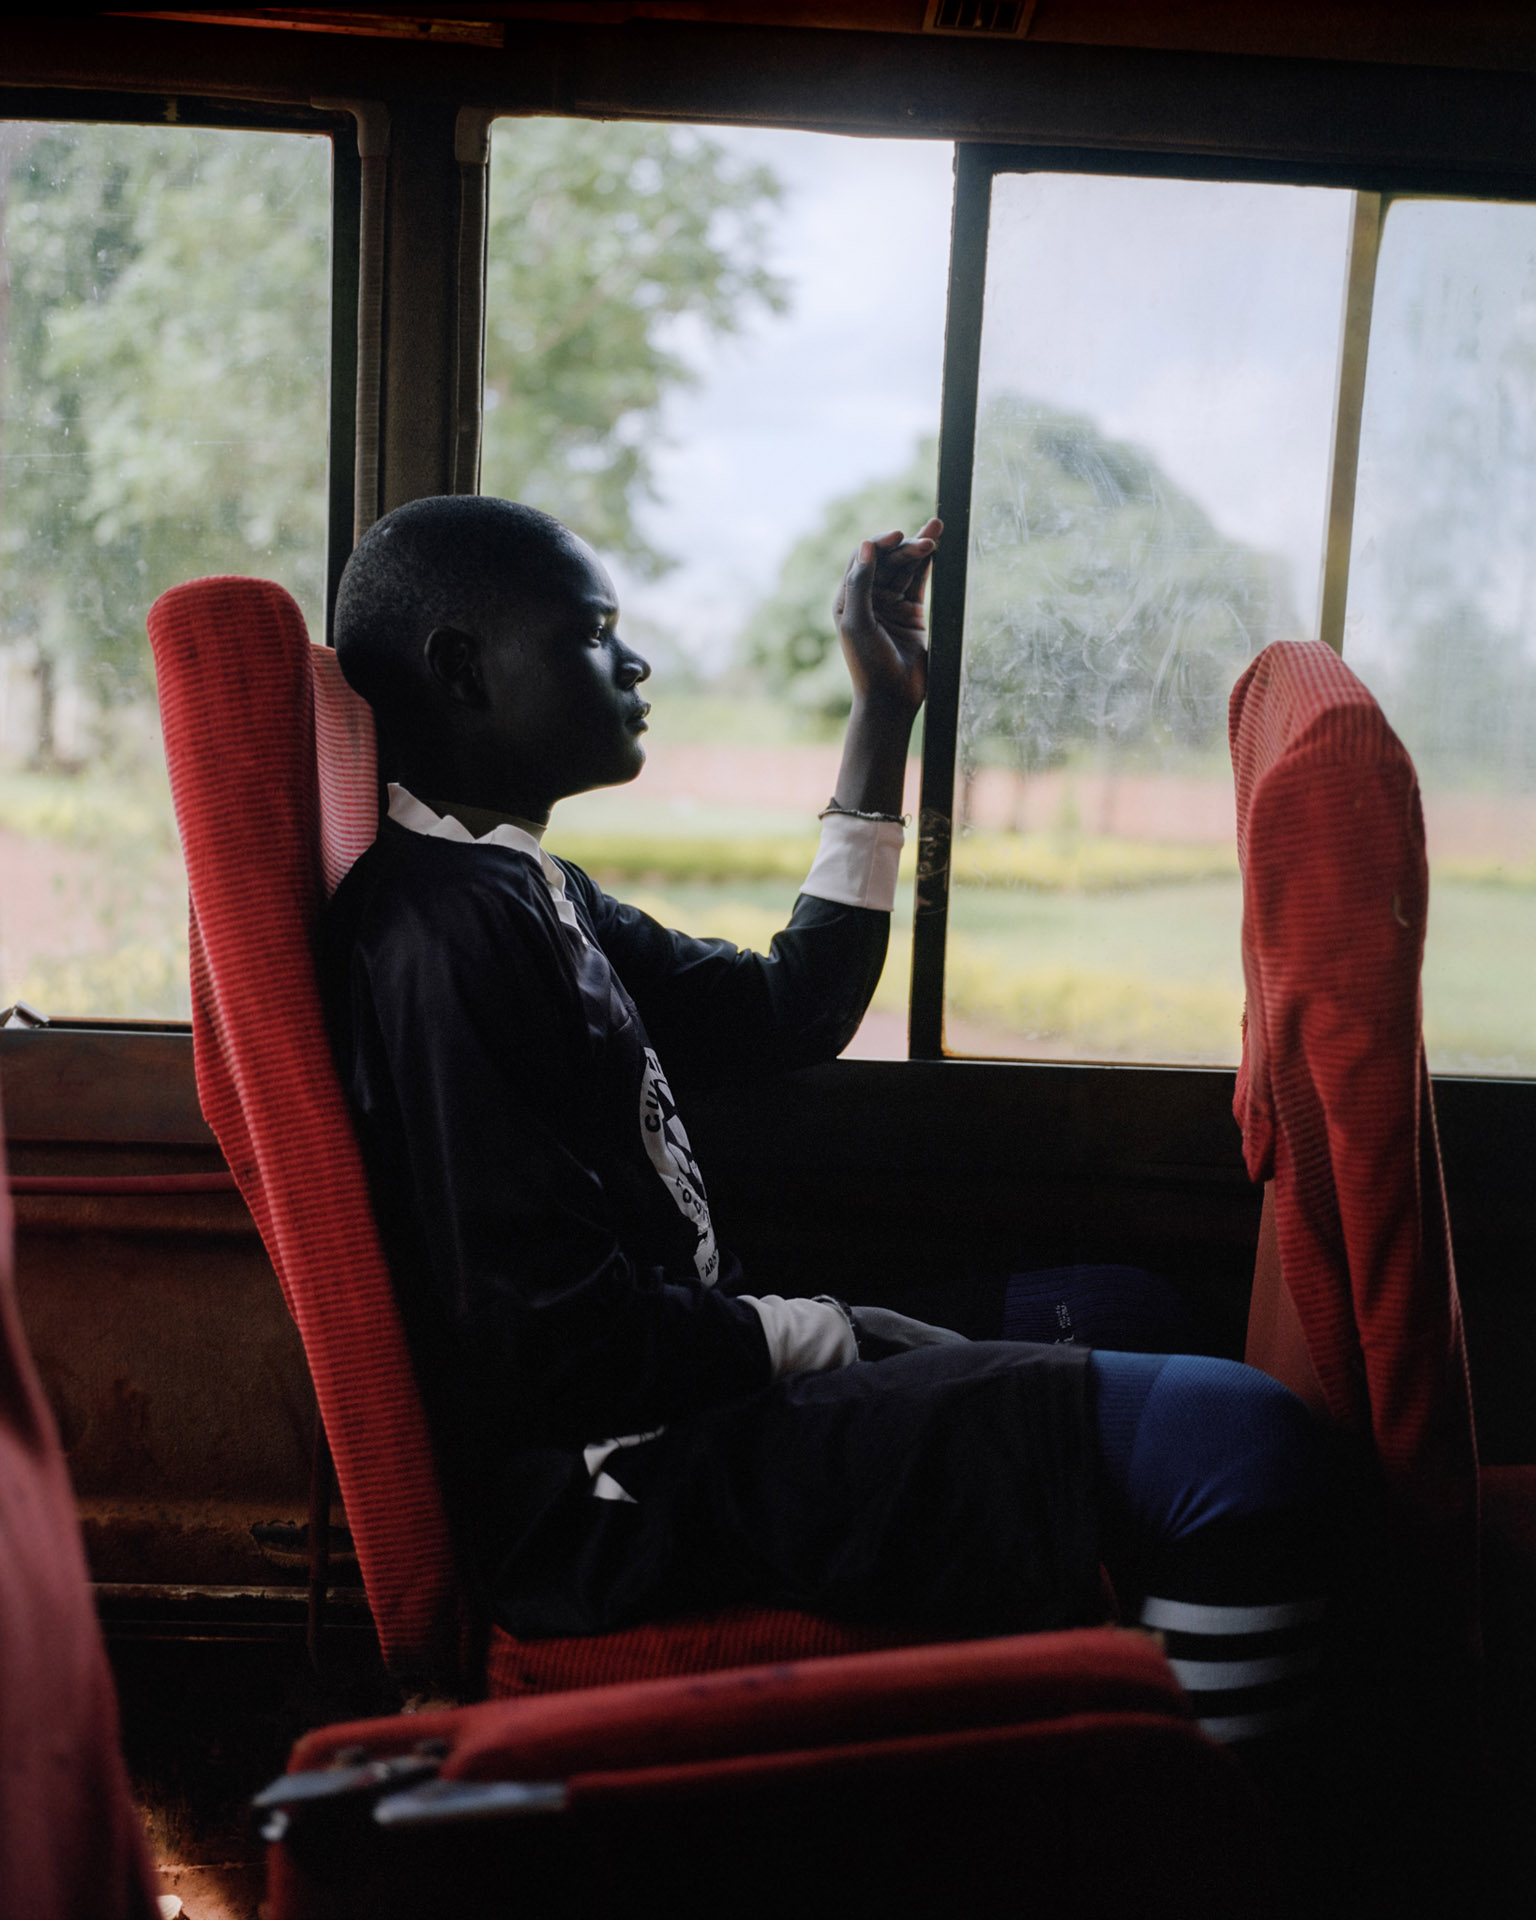 young black boy in bus looking outside by Alexi Hobbs in Uganda for Football for good with Sportsnet